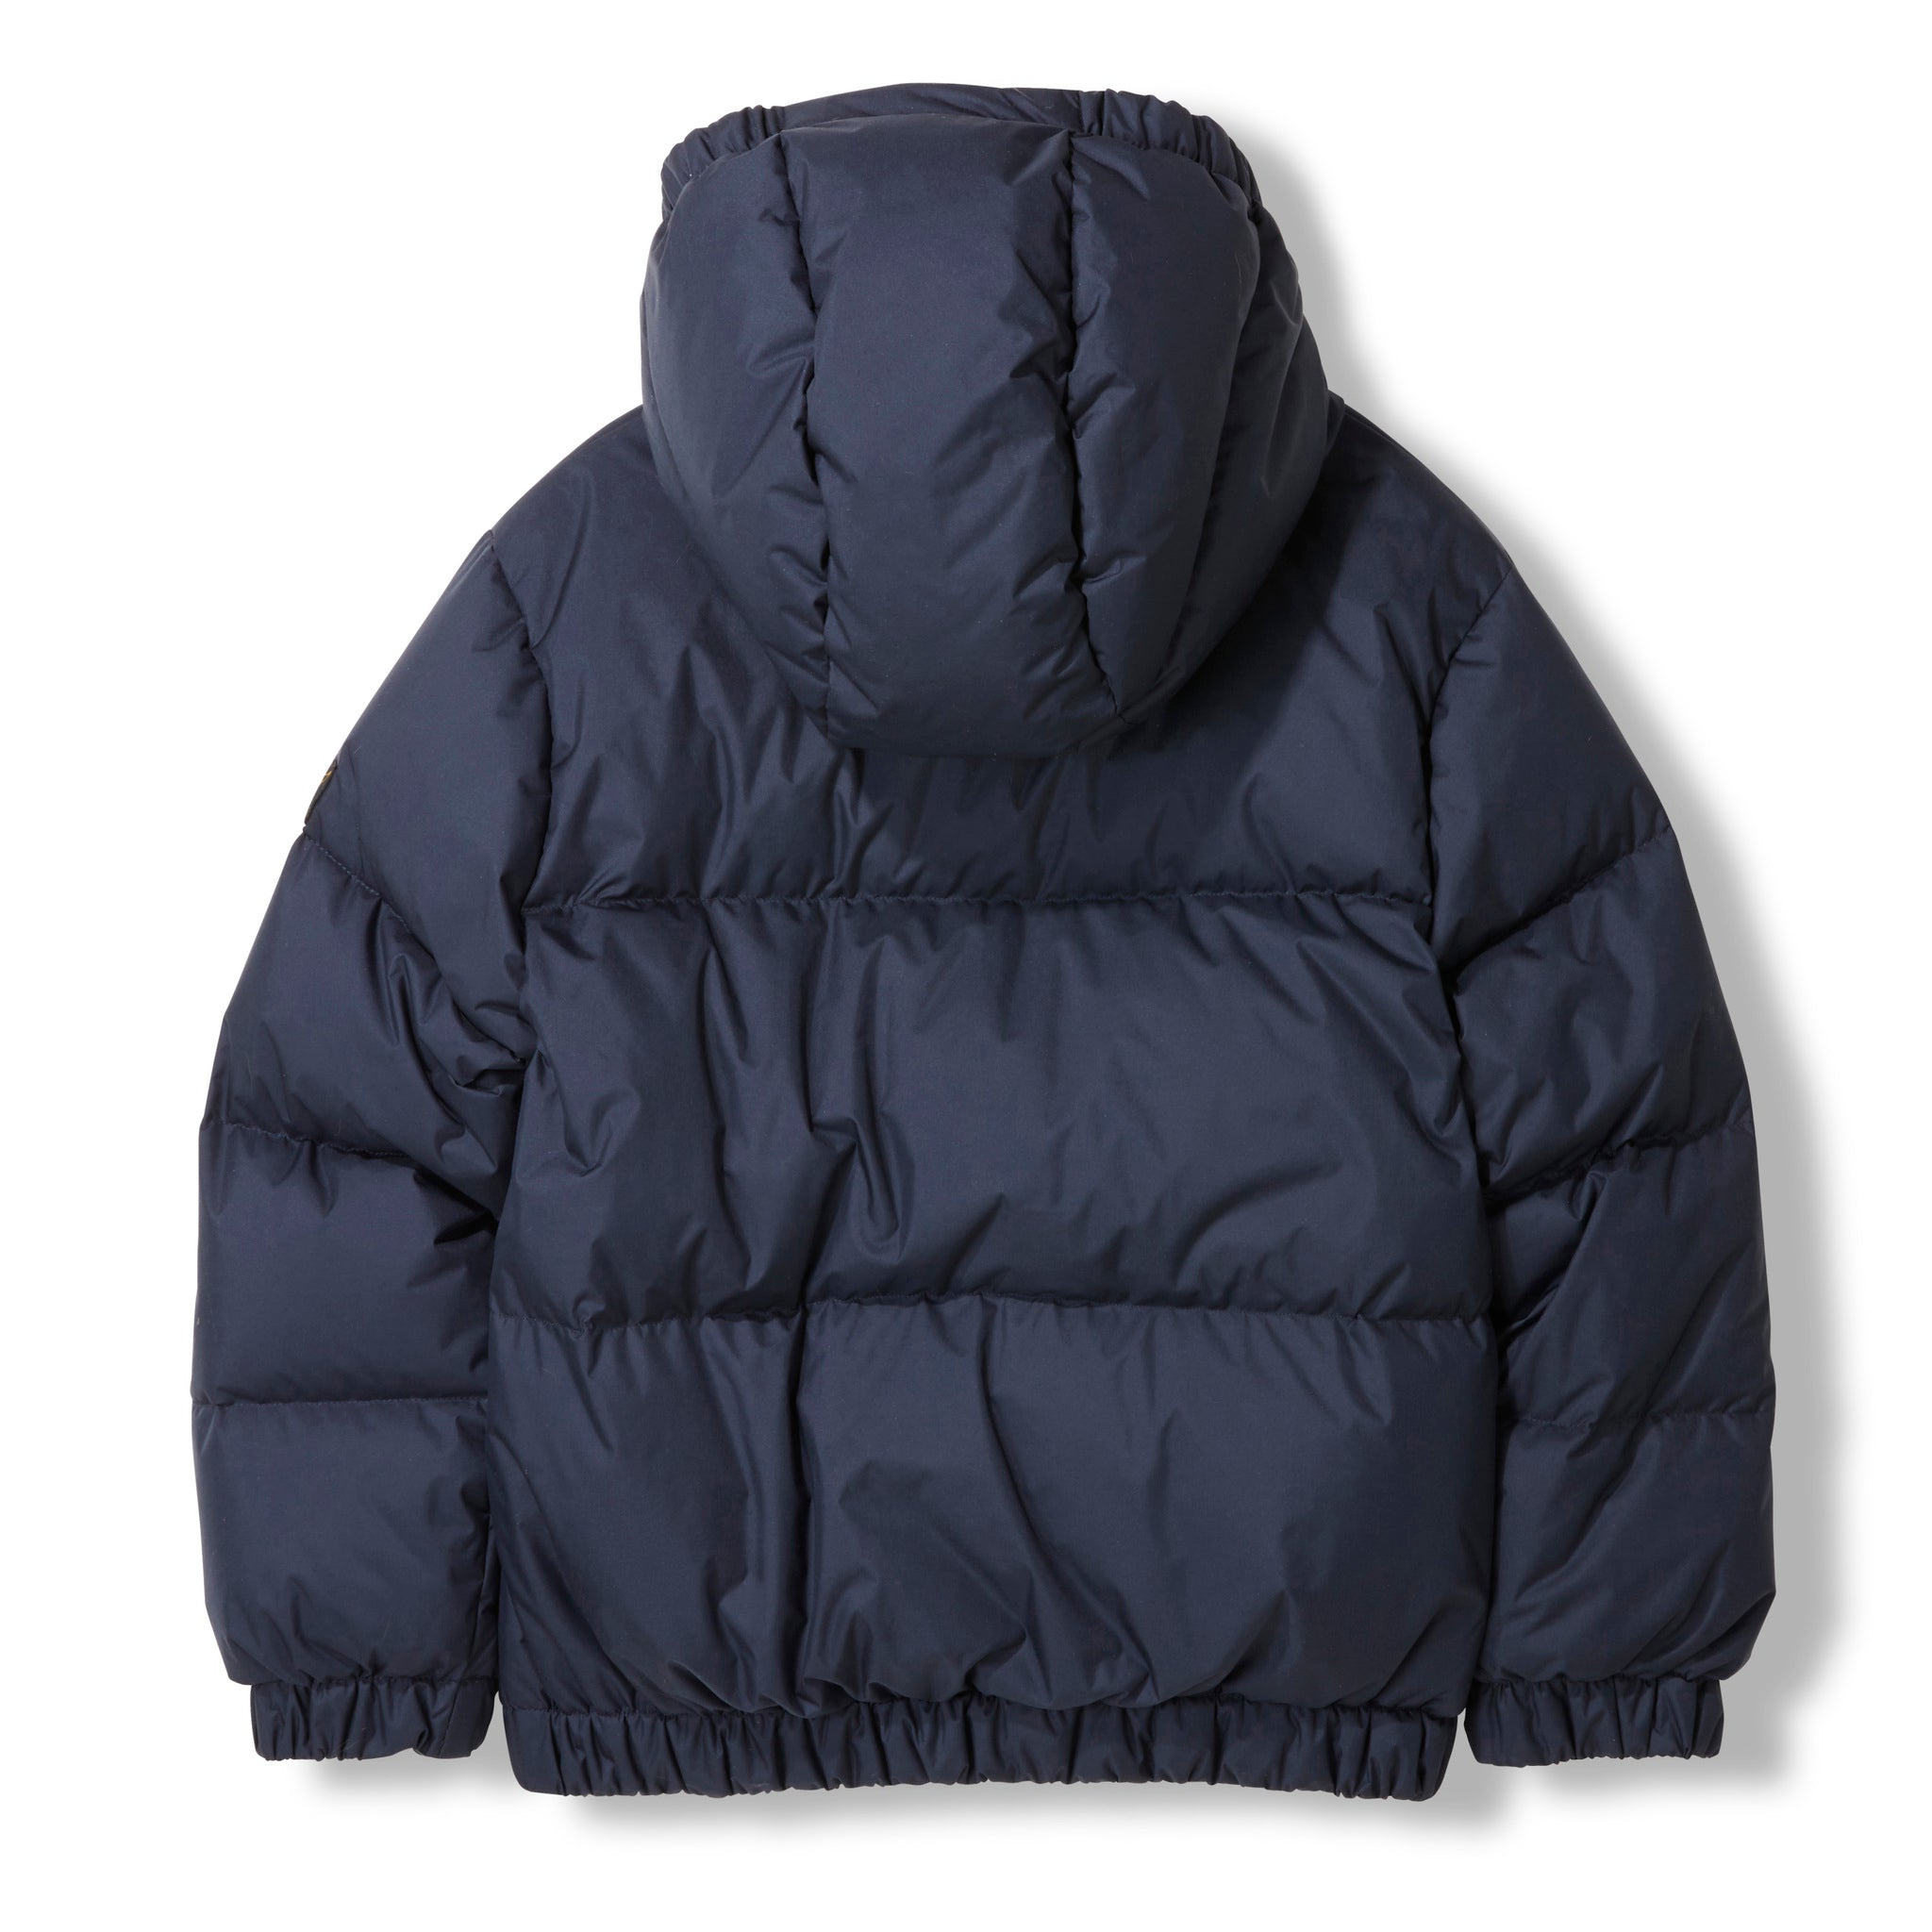 SNOWDUST Navy -  Woven Down Jacket 3